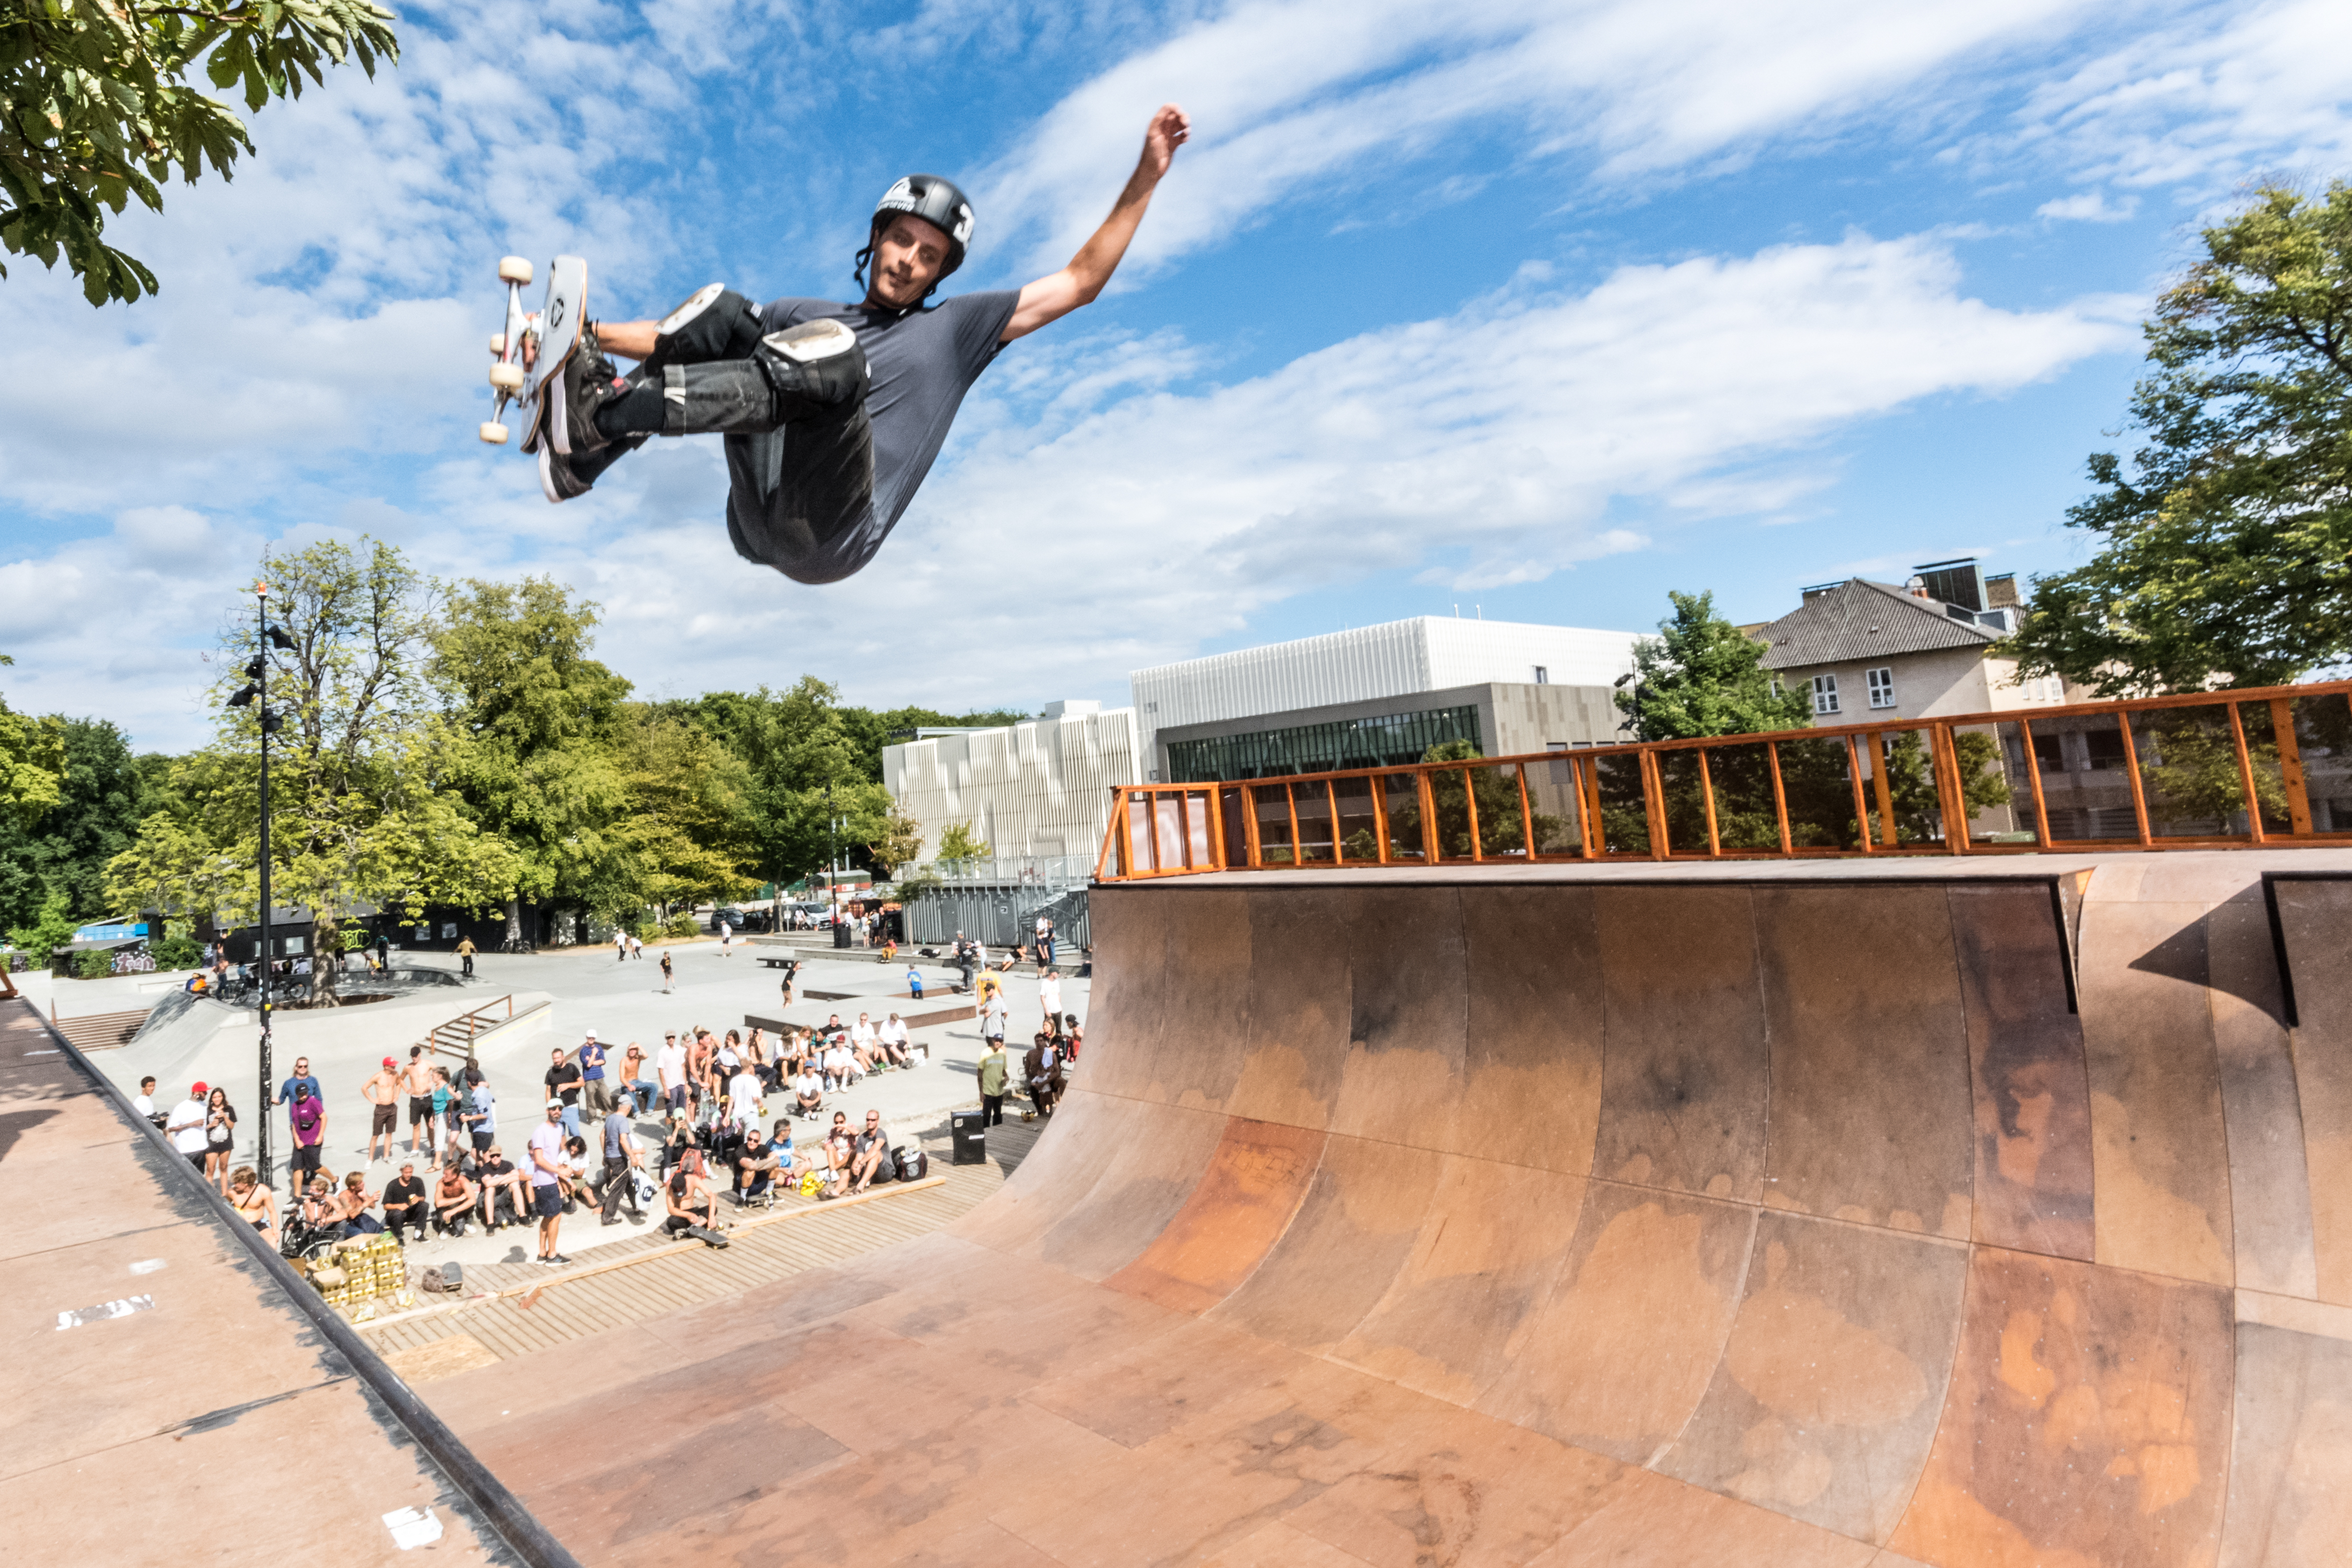 CPH PRO 2018 Vert and Hullet Session - 21 - Zach Miller